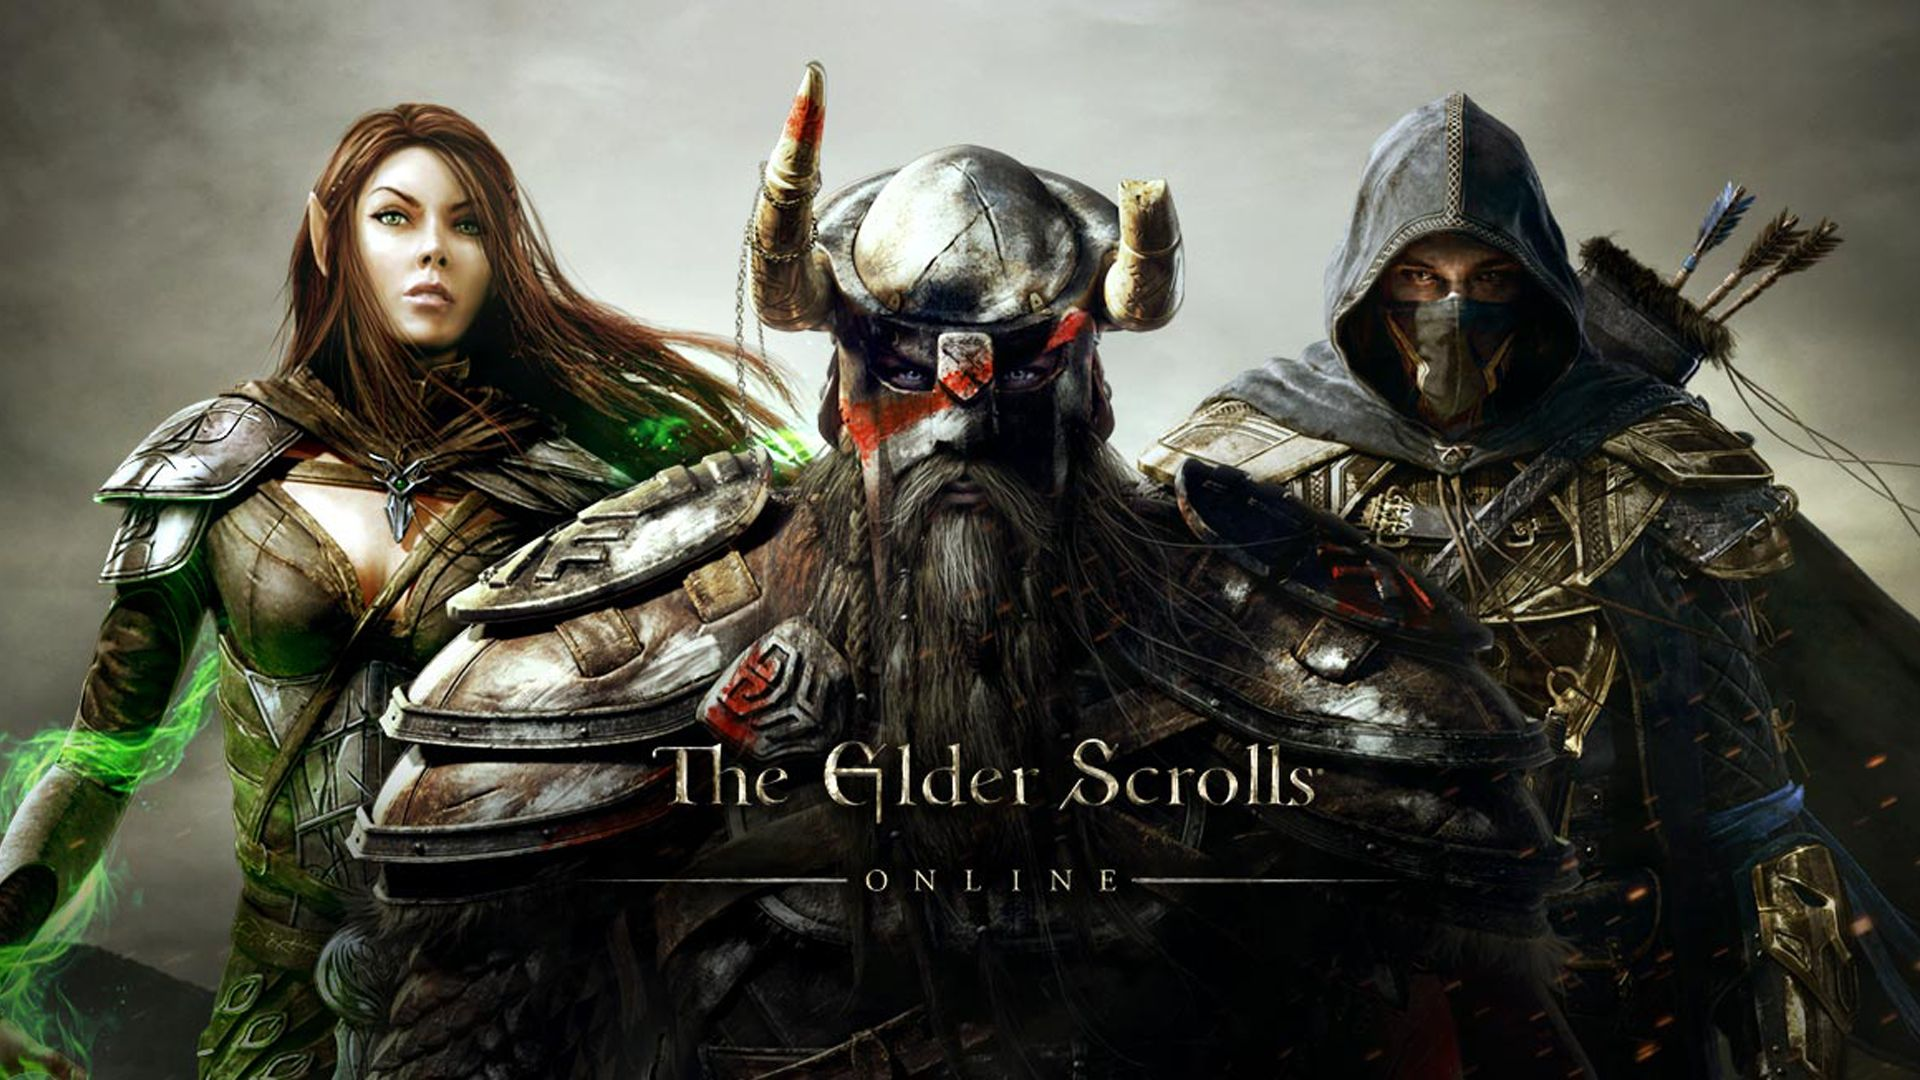 Latest UK Gaming Charts – The Elder Scrolls Online Takes Top Spot Ahead of Lego Jurassic World, The Witcher 3 and Payday 2: Crimewave Edition